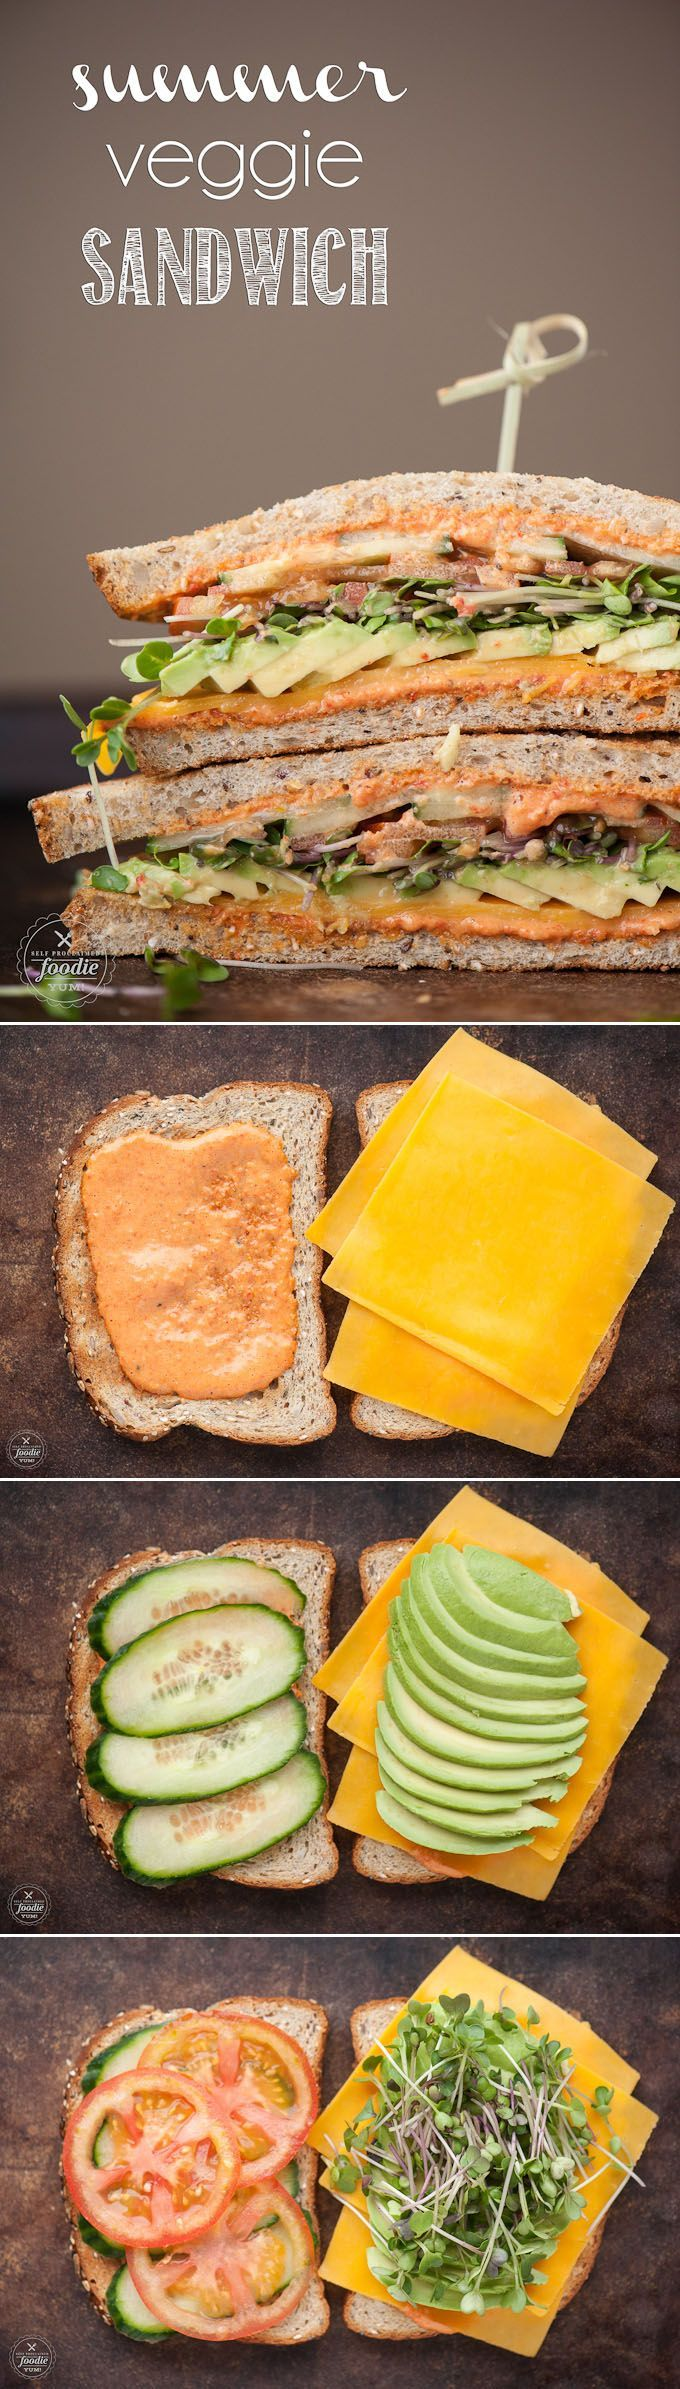 Can you think of a better way to enjoy summer than enjoying a lovely picnic outdoors while enjoying something like this Summer Veggie Sandwich?